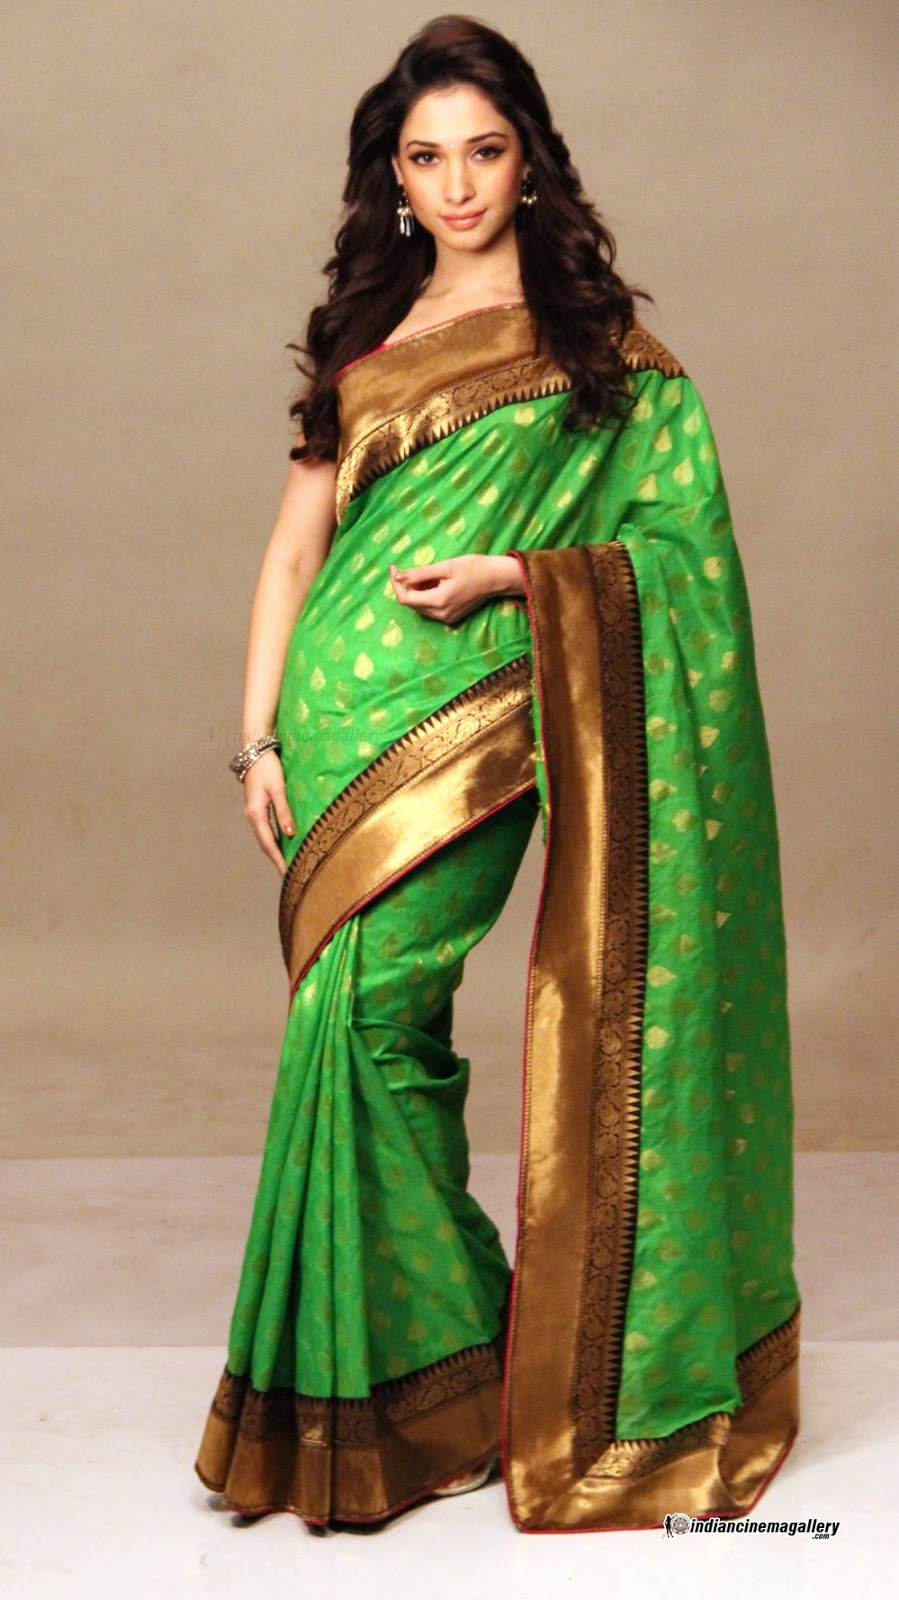 Perfect Clothing For The Indian Wedding Ceremony - Punternet Reviews